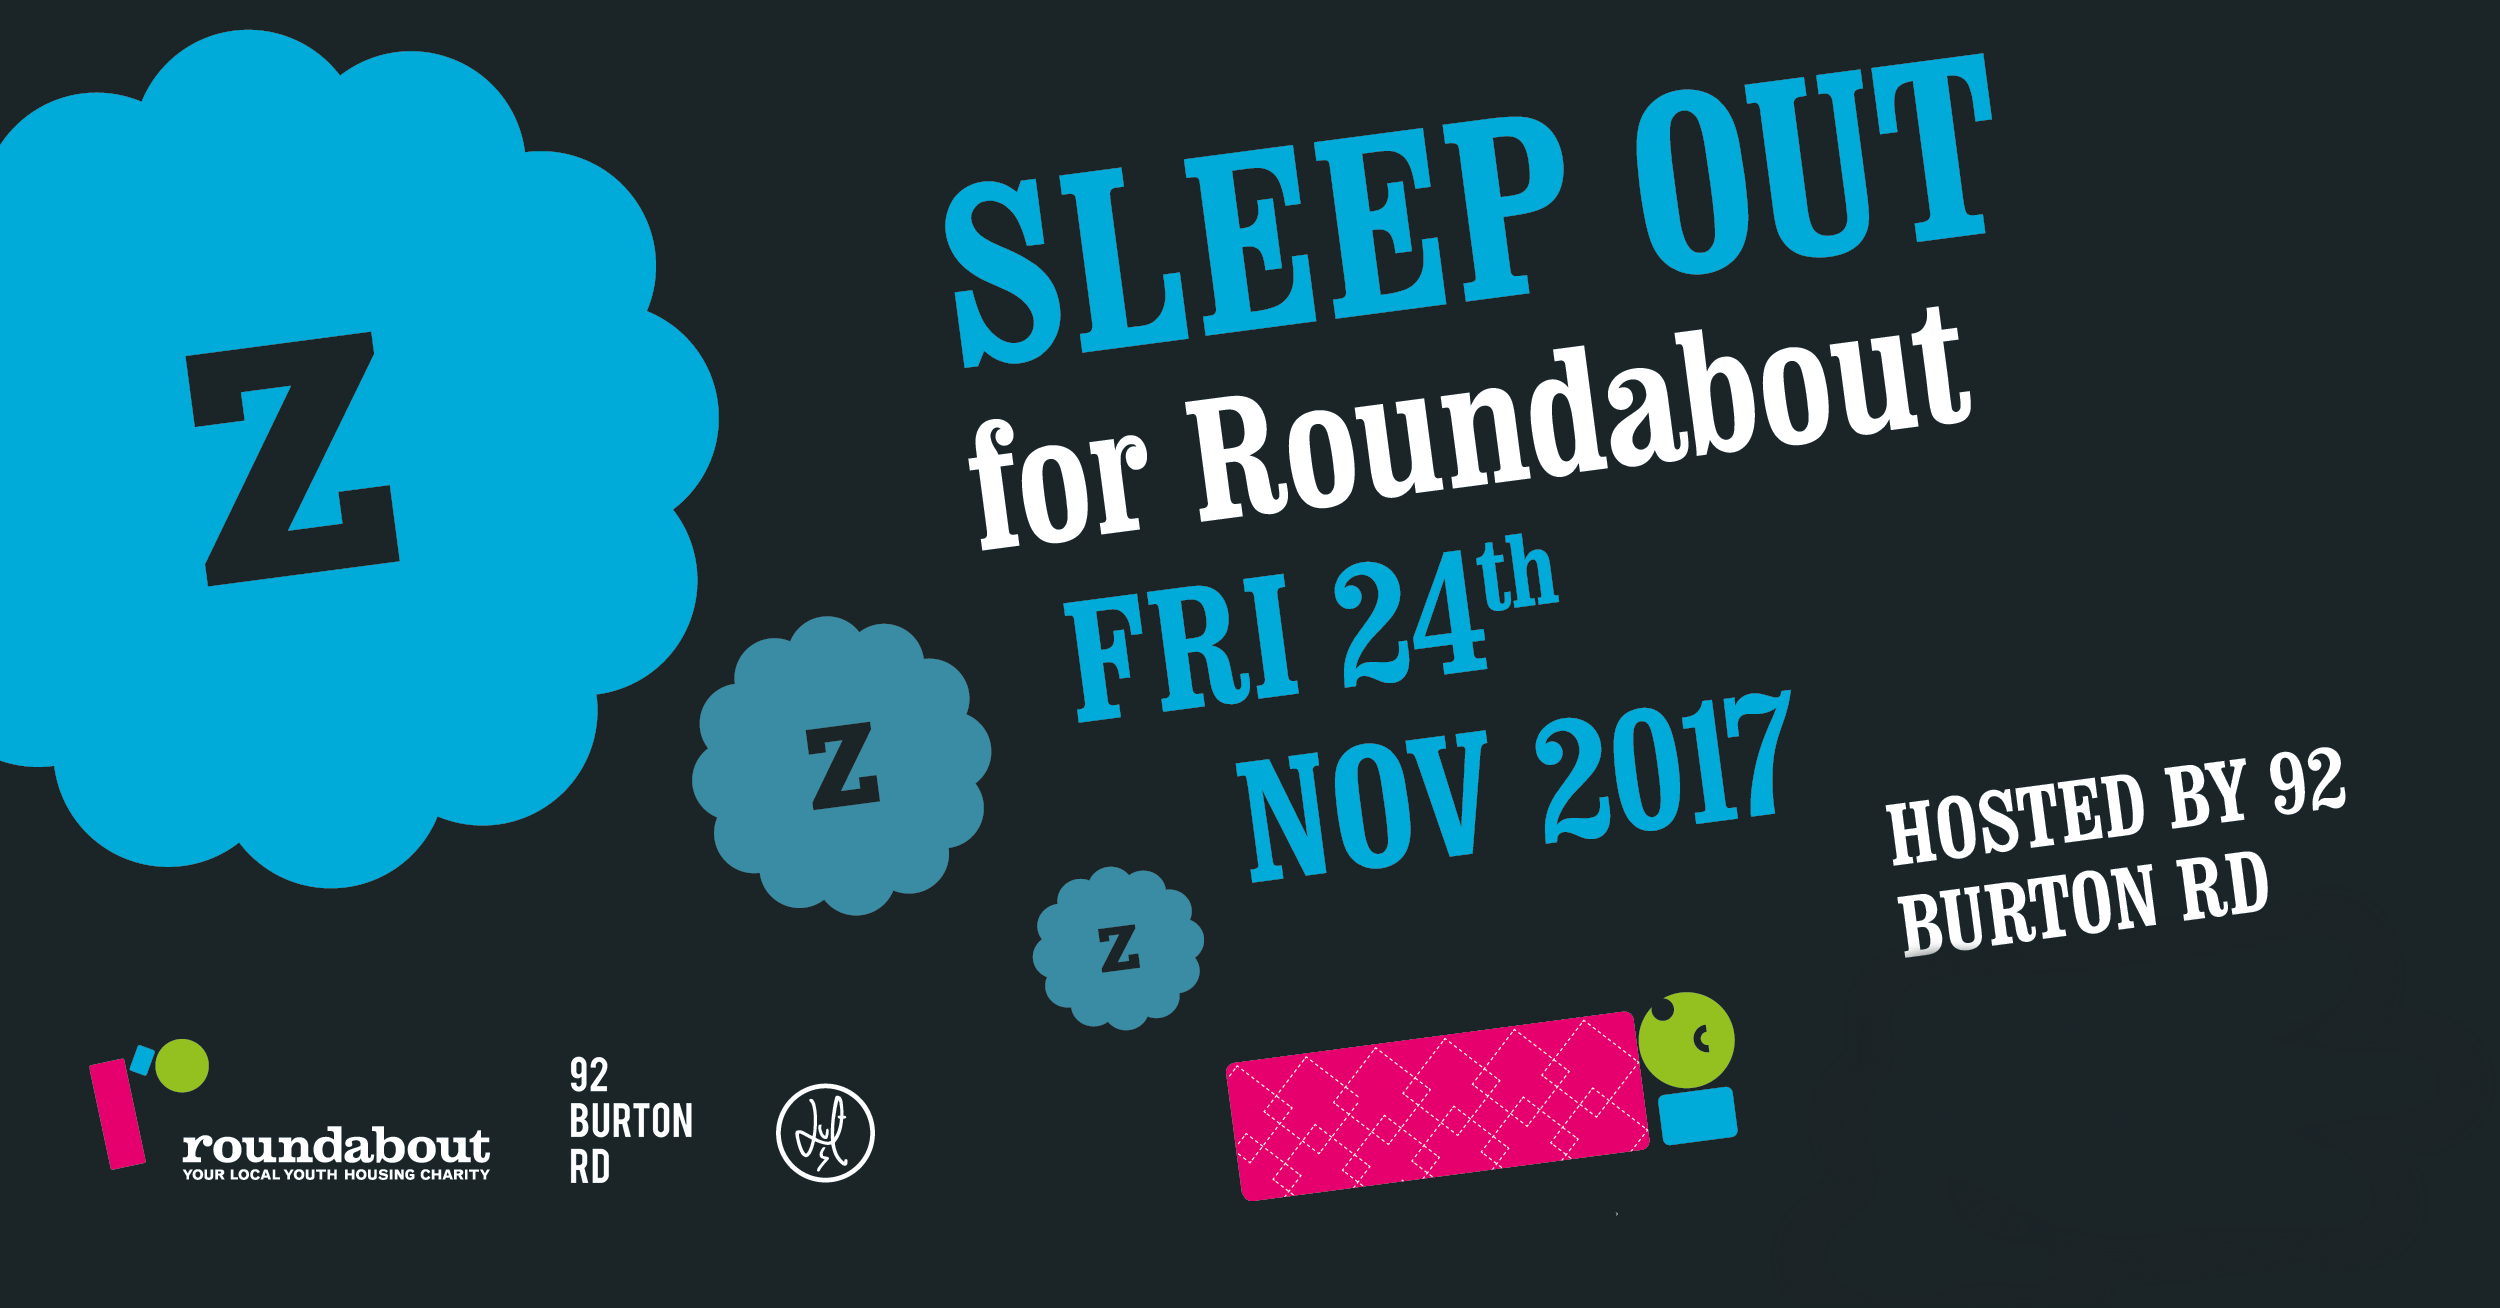 Roundabout-facebook2 no join us wording